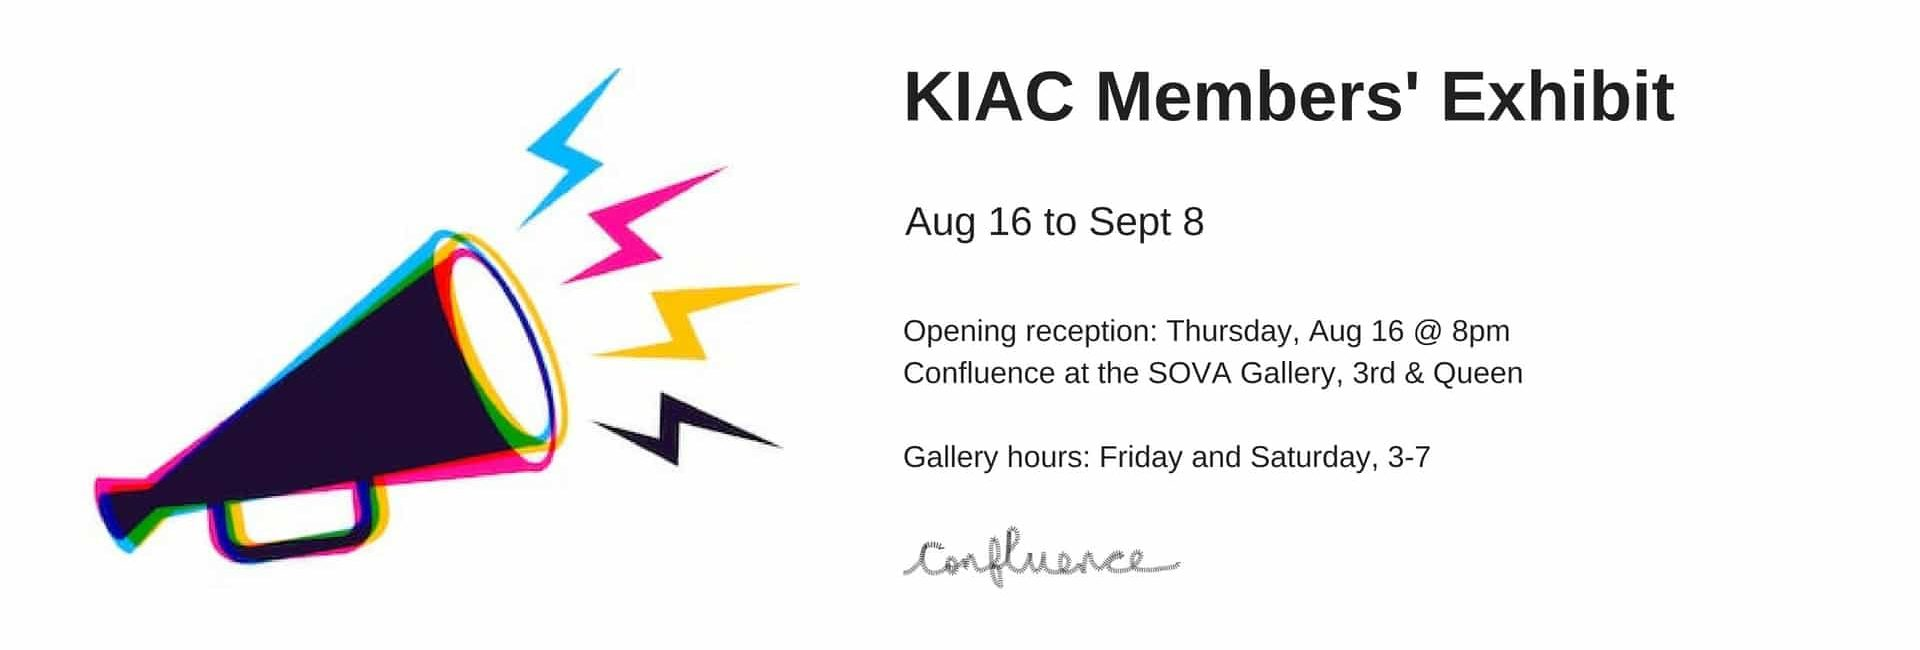 Confluence Opening: Thursday, August 16 @ 8pm